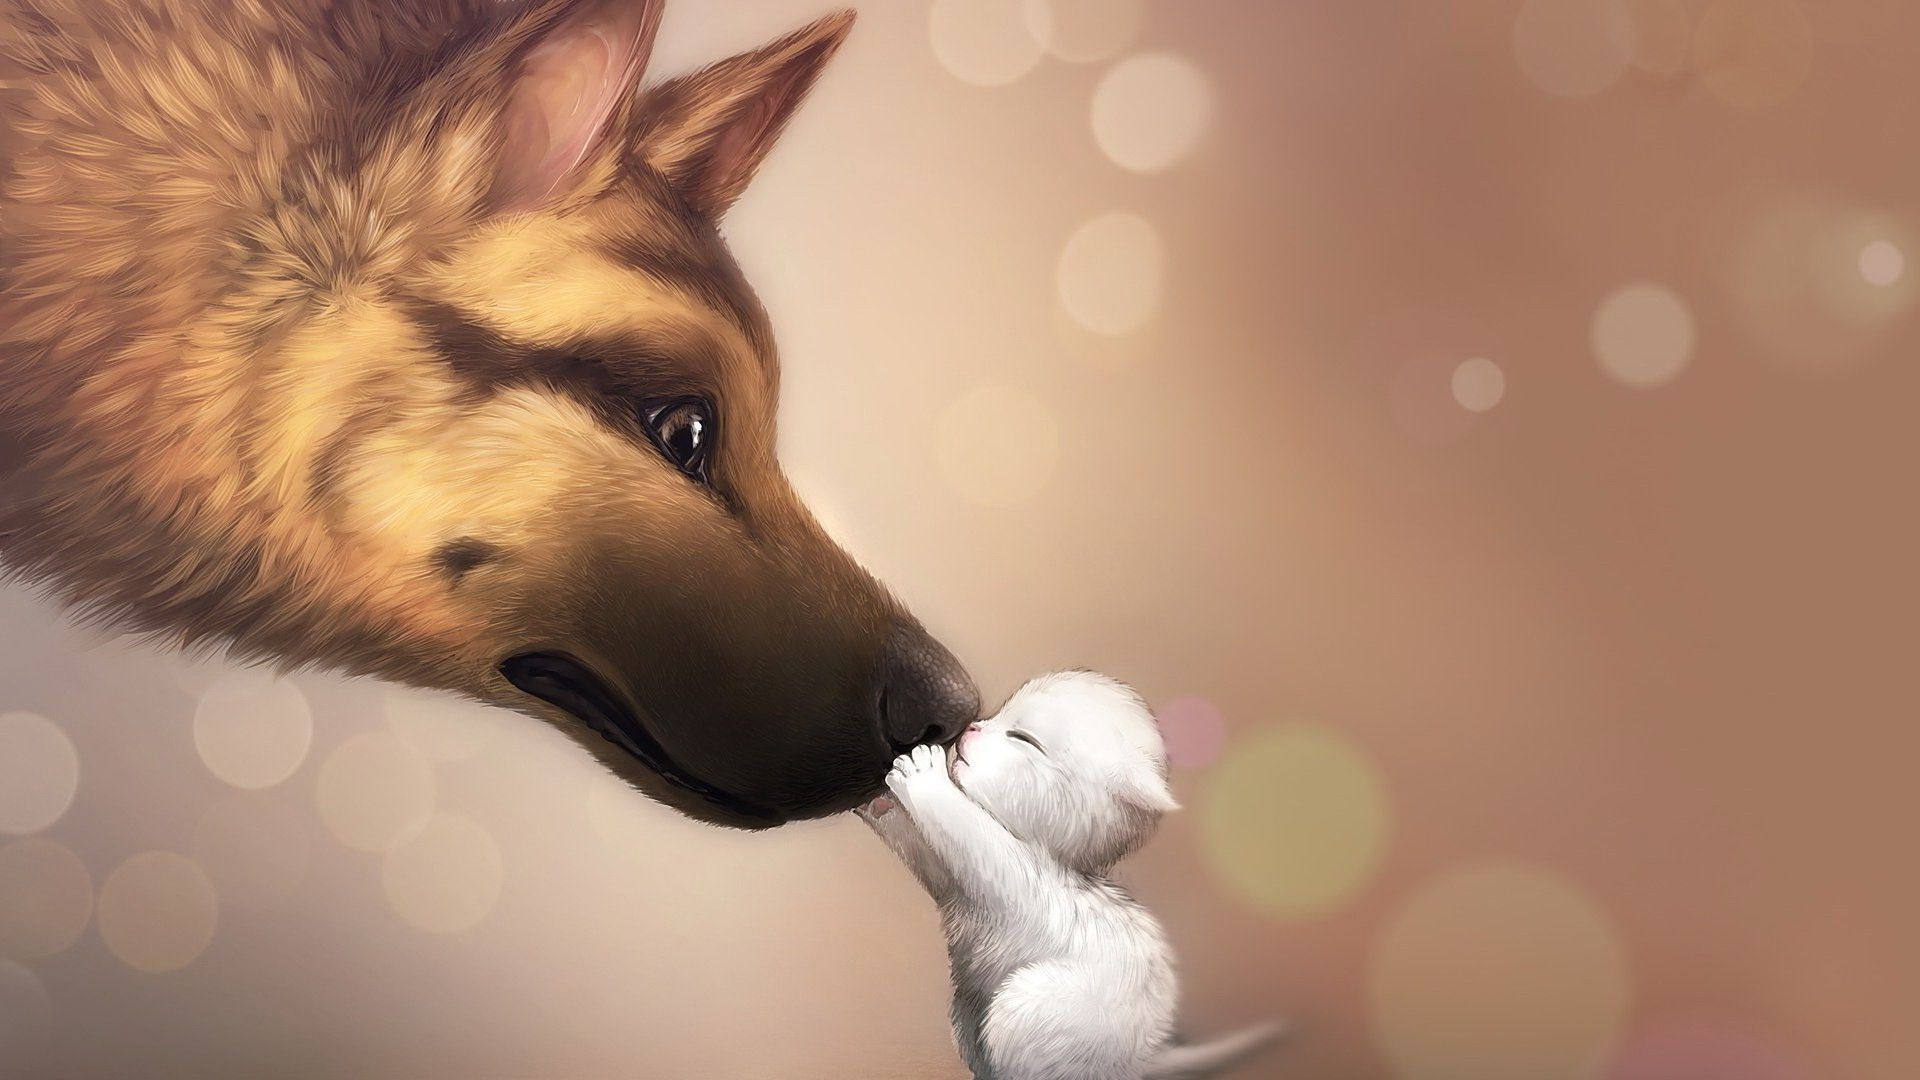 1920x1080 Download hd wallpapers of 840-anime, Bokeh, Artwork, Dog ...